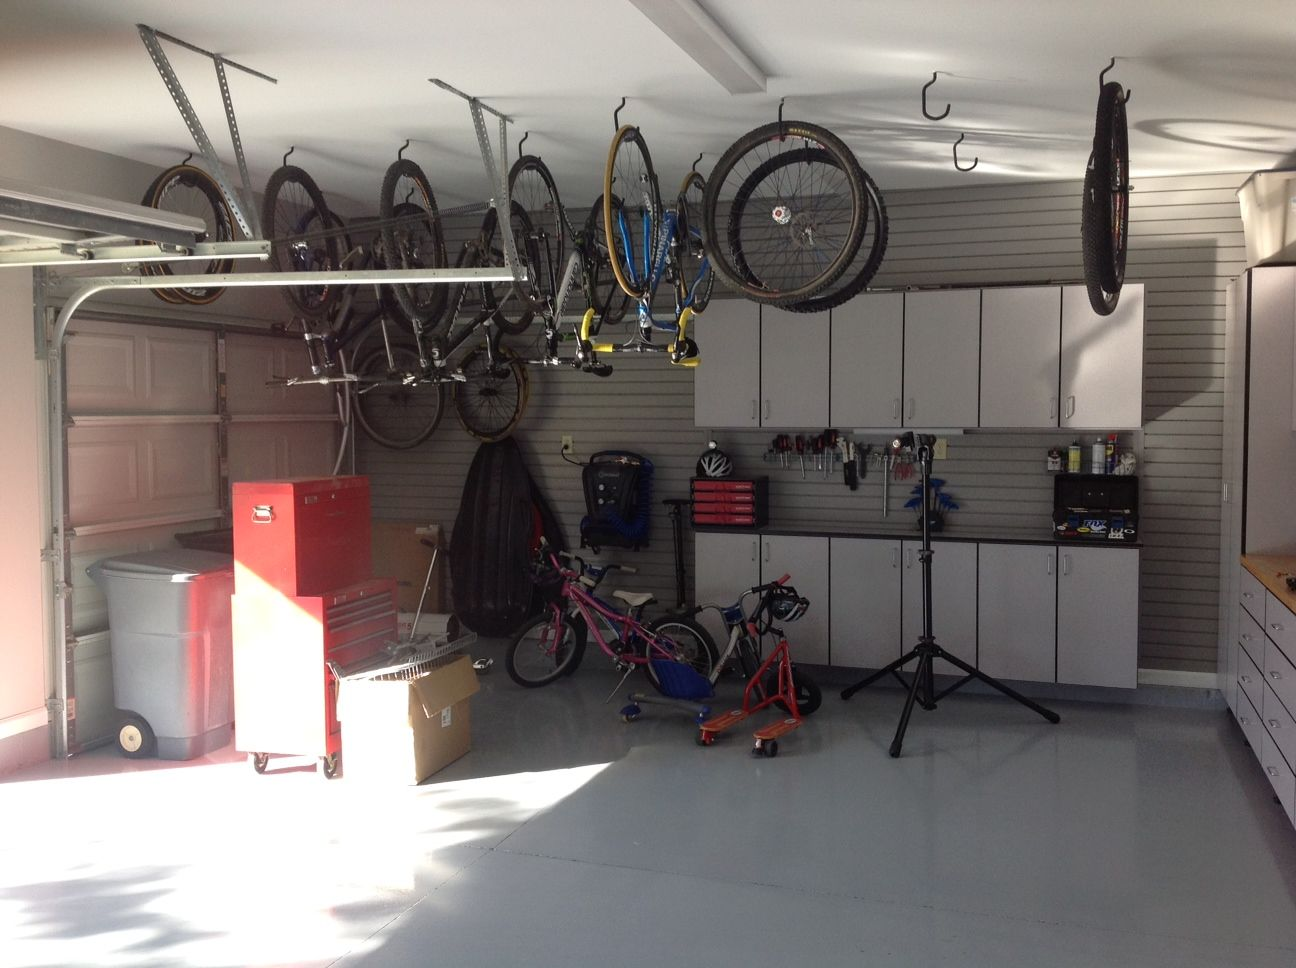 Example of hanging bikes in garage ceiling with hooks ...